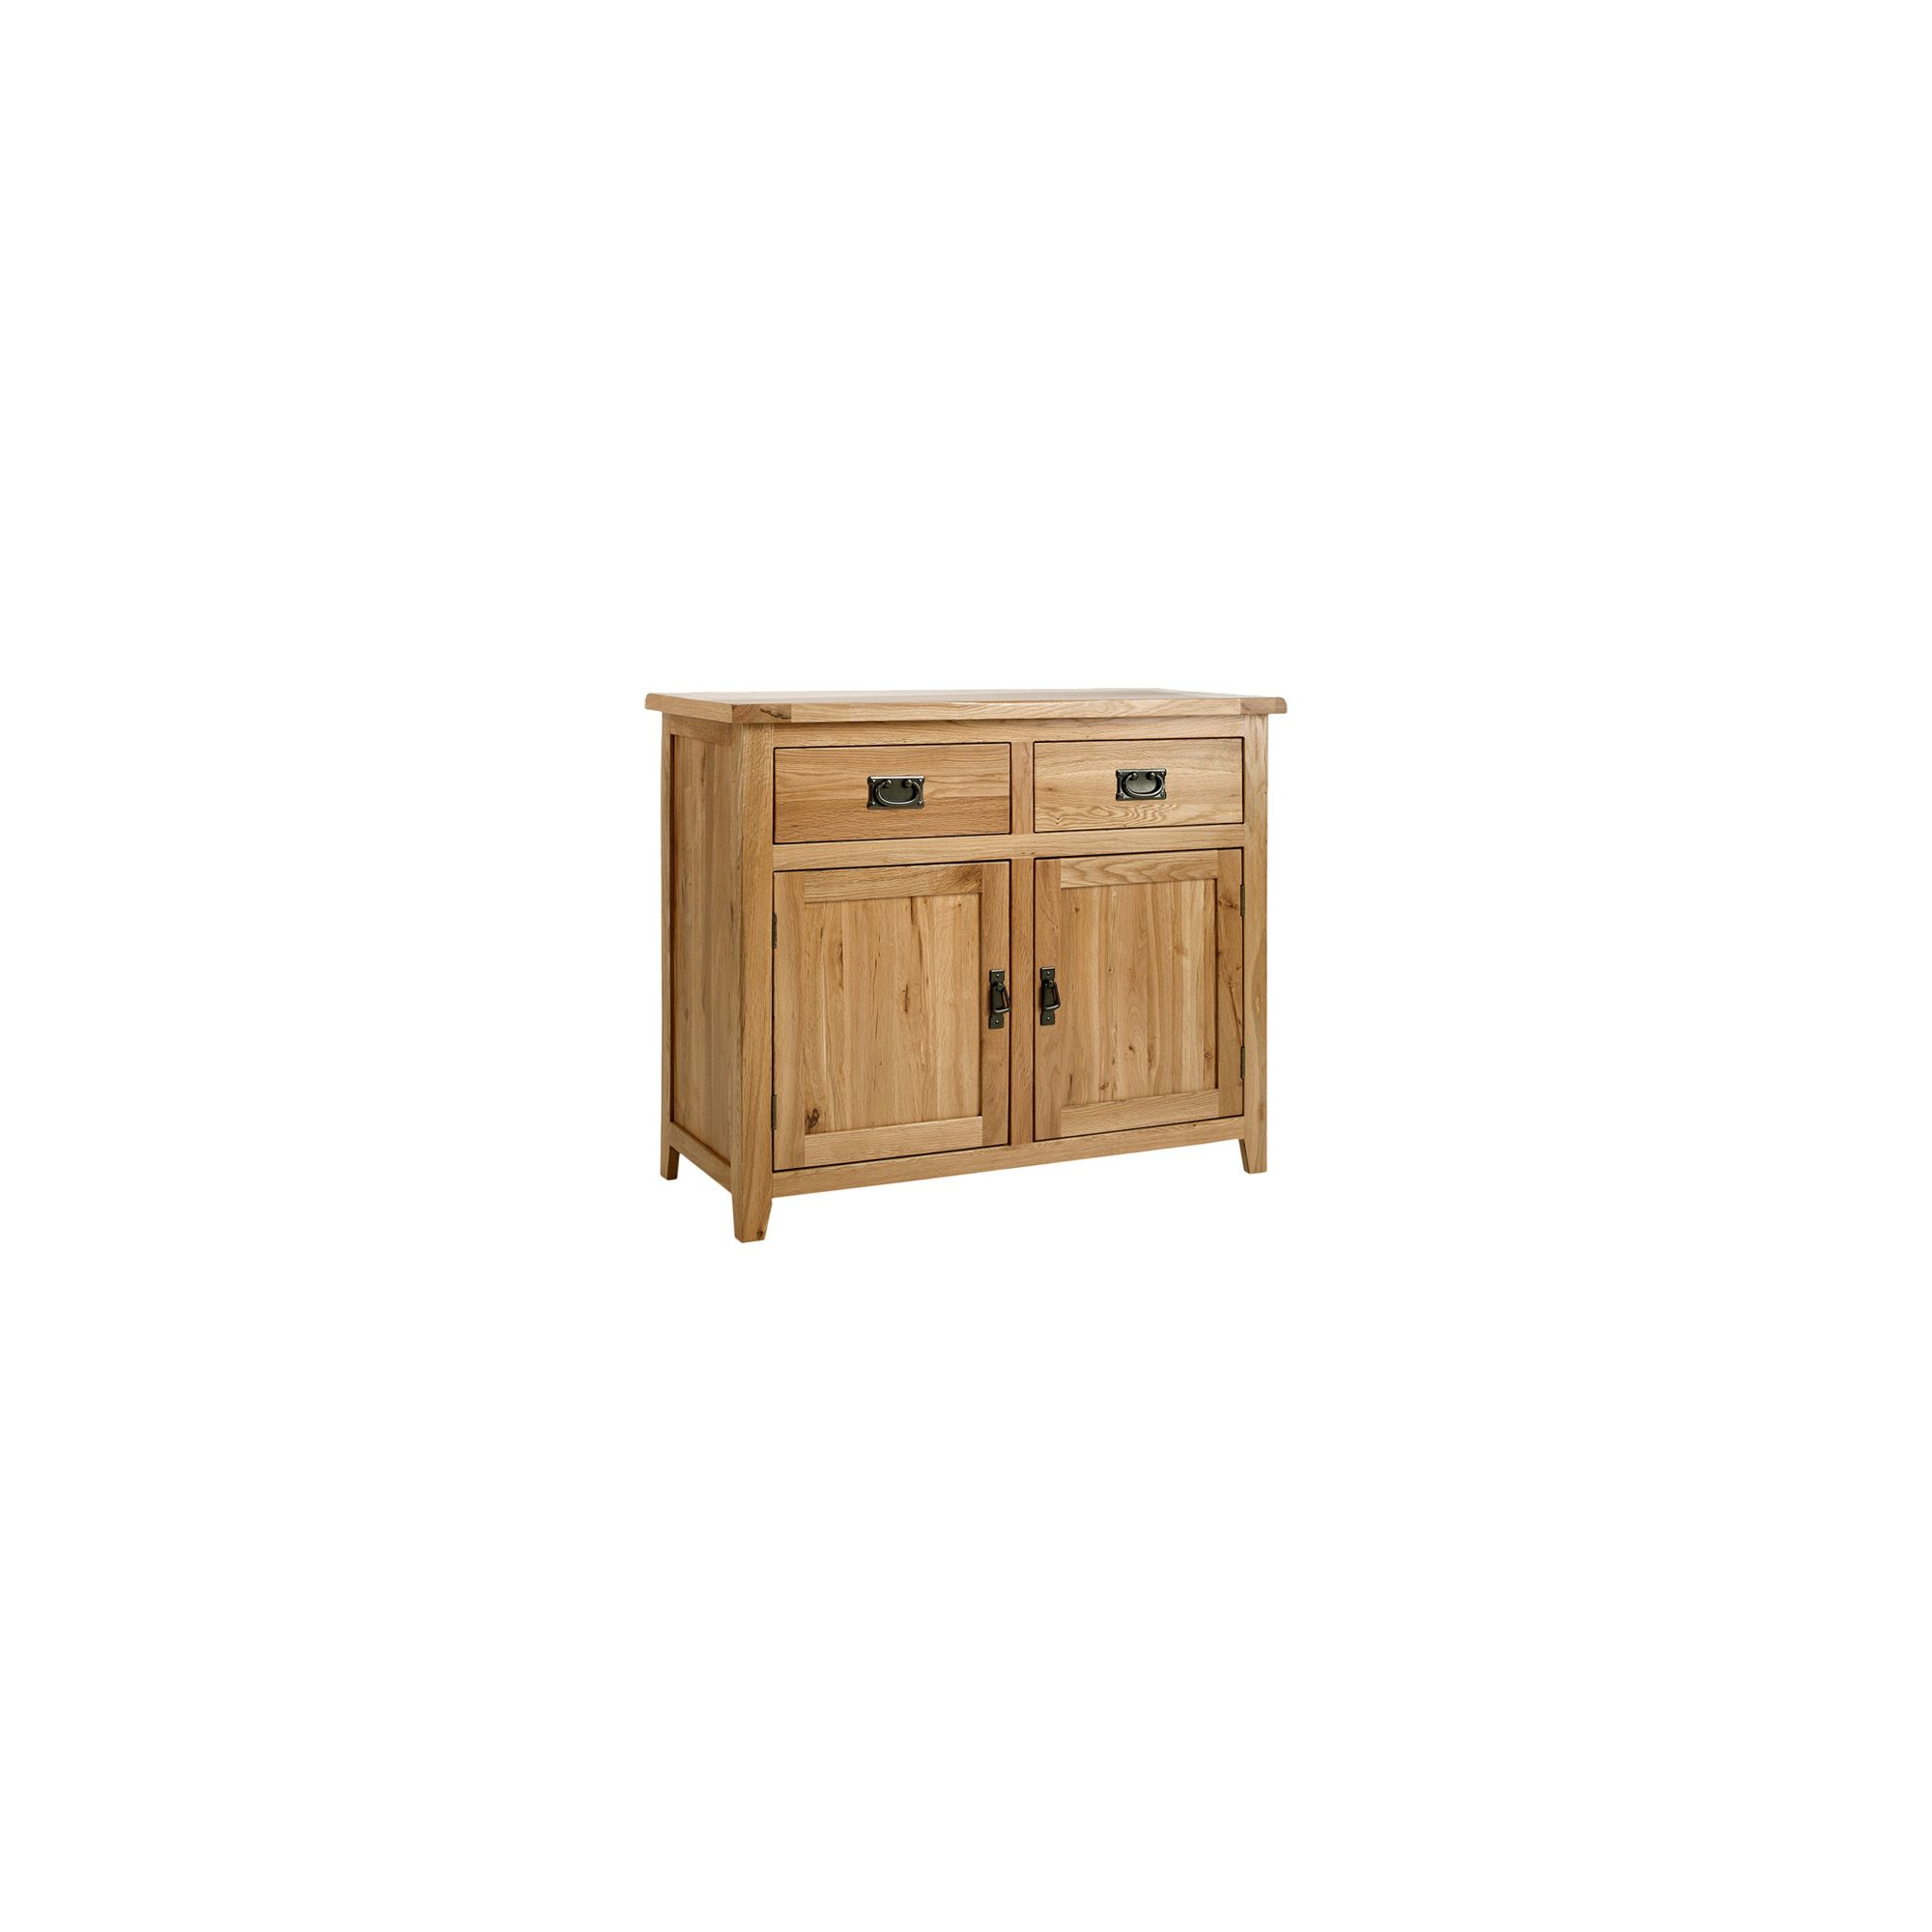 Ametis Westbury Reclaimed Oak Small Sideboard at Tesco Direct